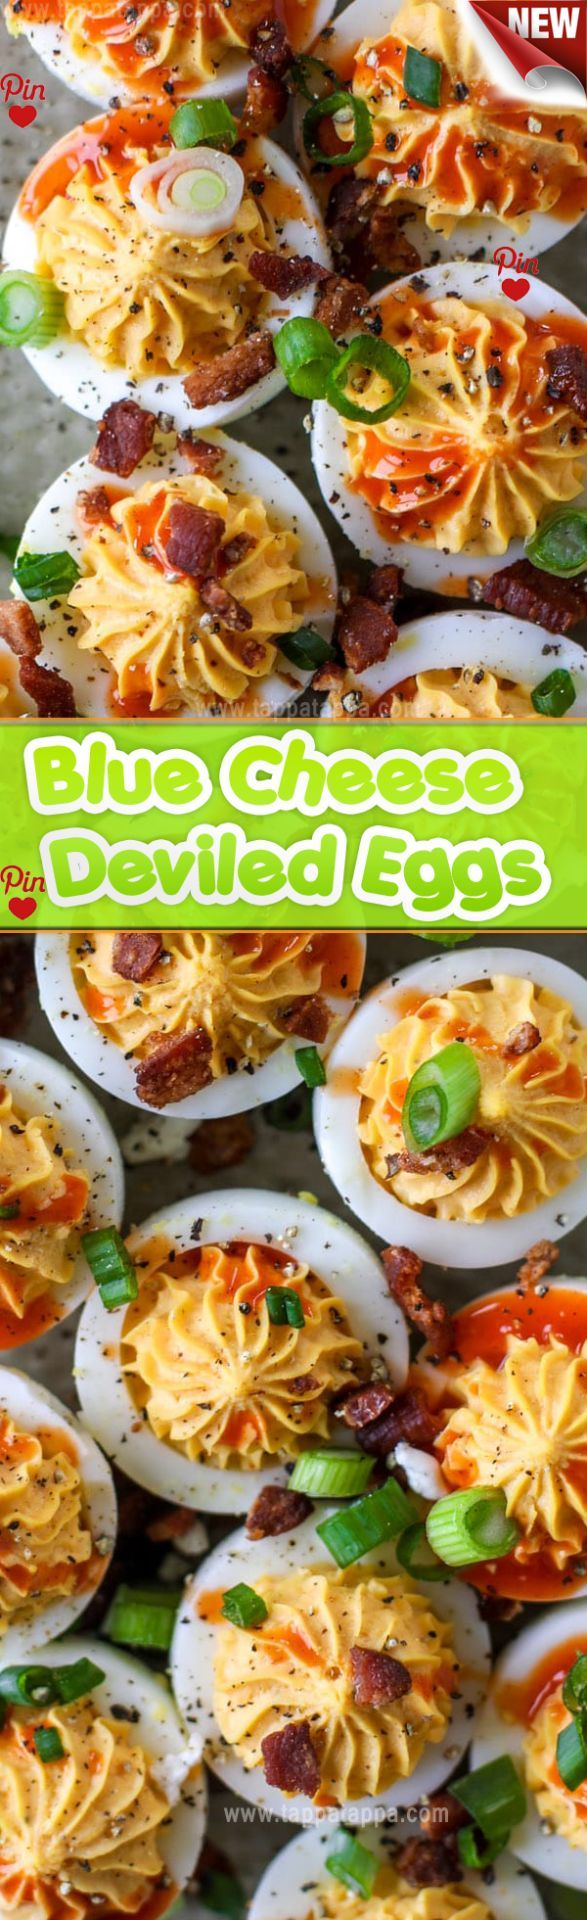 Buffalo Blue Cheese Deviled Eggs Recipe Not that I ever ate them. Even now that ... - #ate #Blue #Buffalo #cheese #Deviled #eggs #recipe #deviledeggs